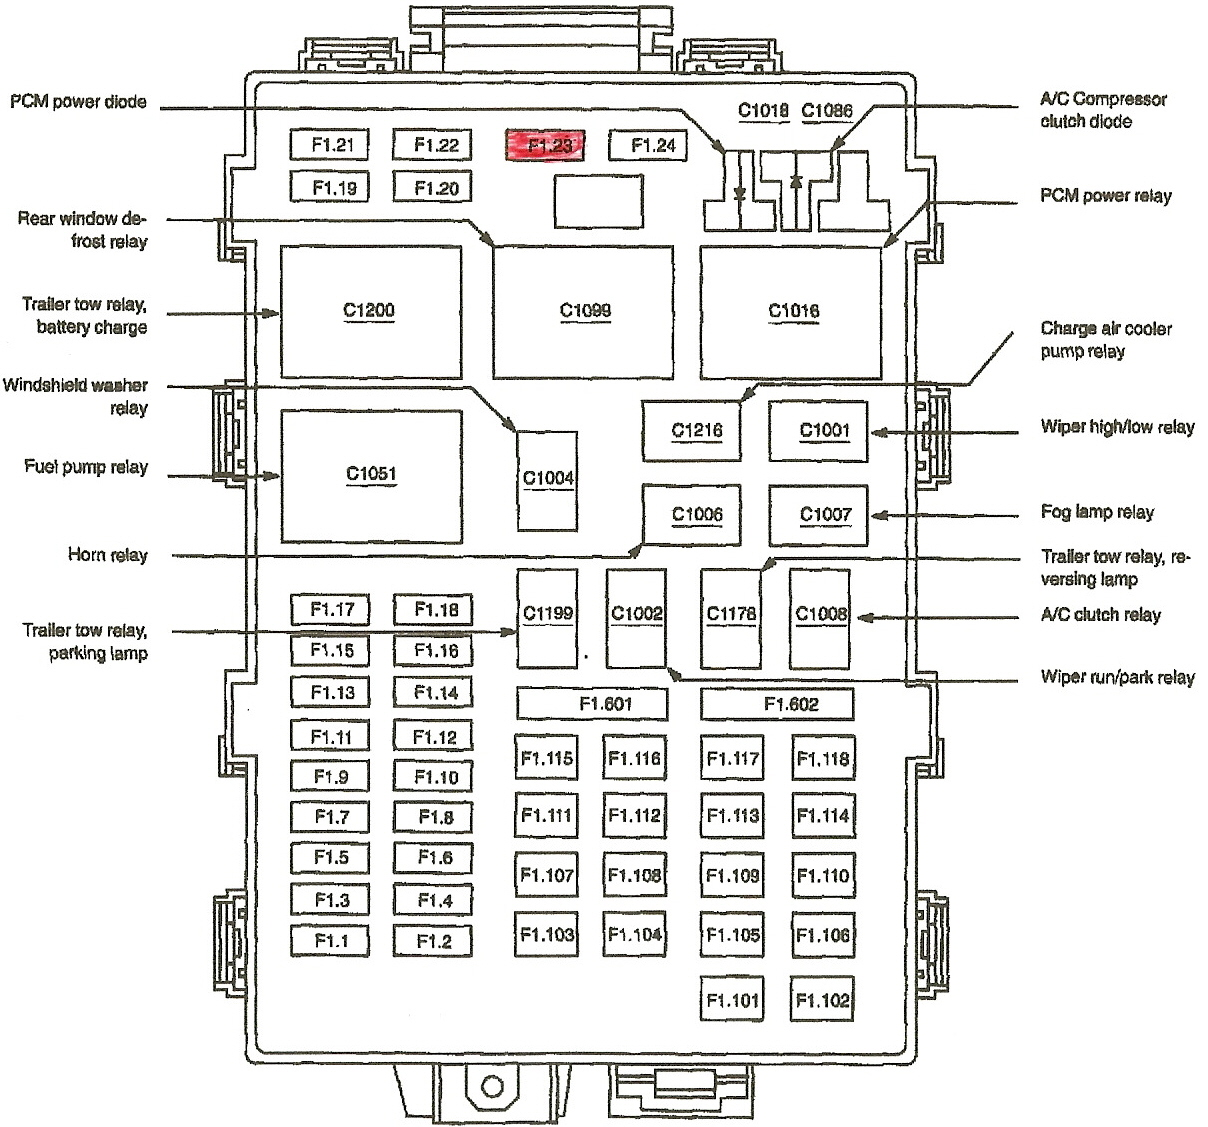 97 Corvetye Fuse Box Diagram